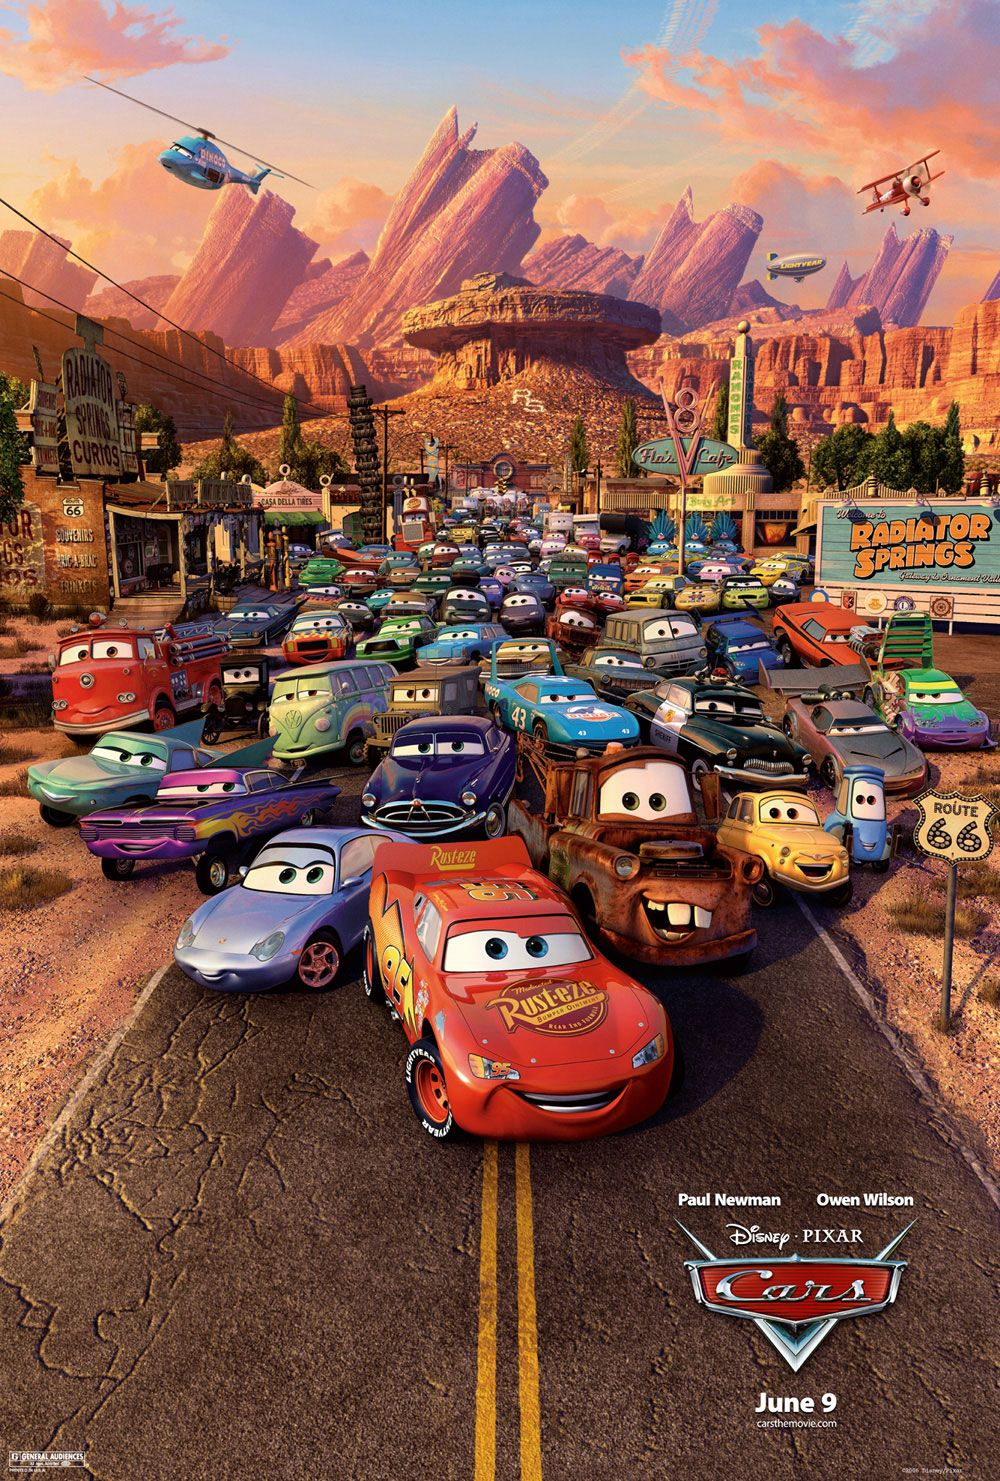 Cars silver racer poster 2 - The 25 Best Disney Cars Wallpaper Ideas On Pinterest Disney Pixar Cars Cars 3 Film And Latest Pixar Movies